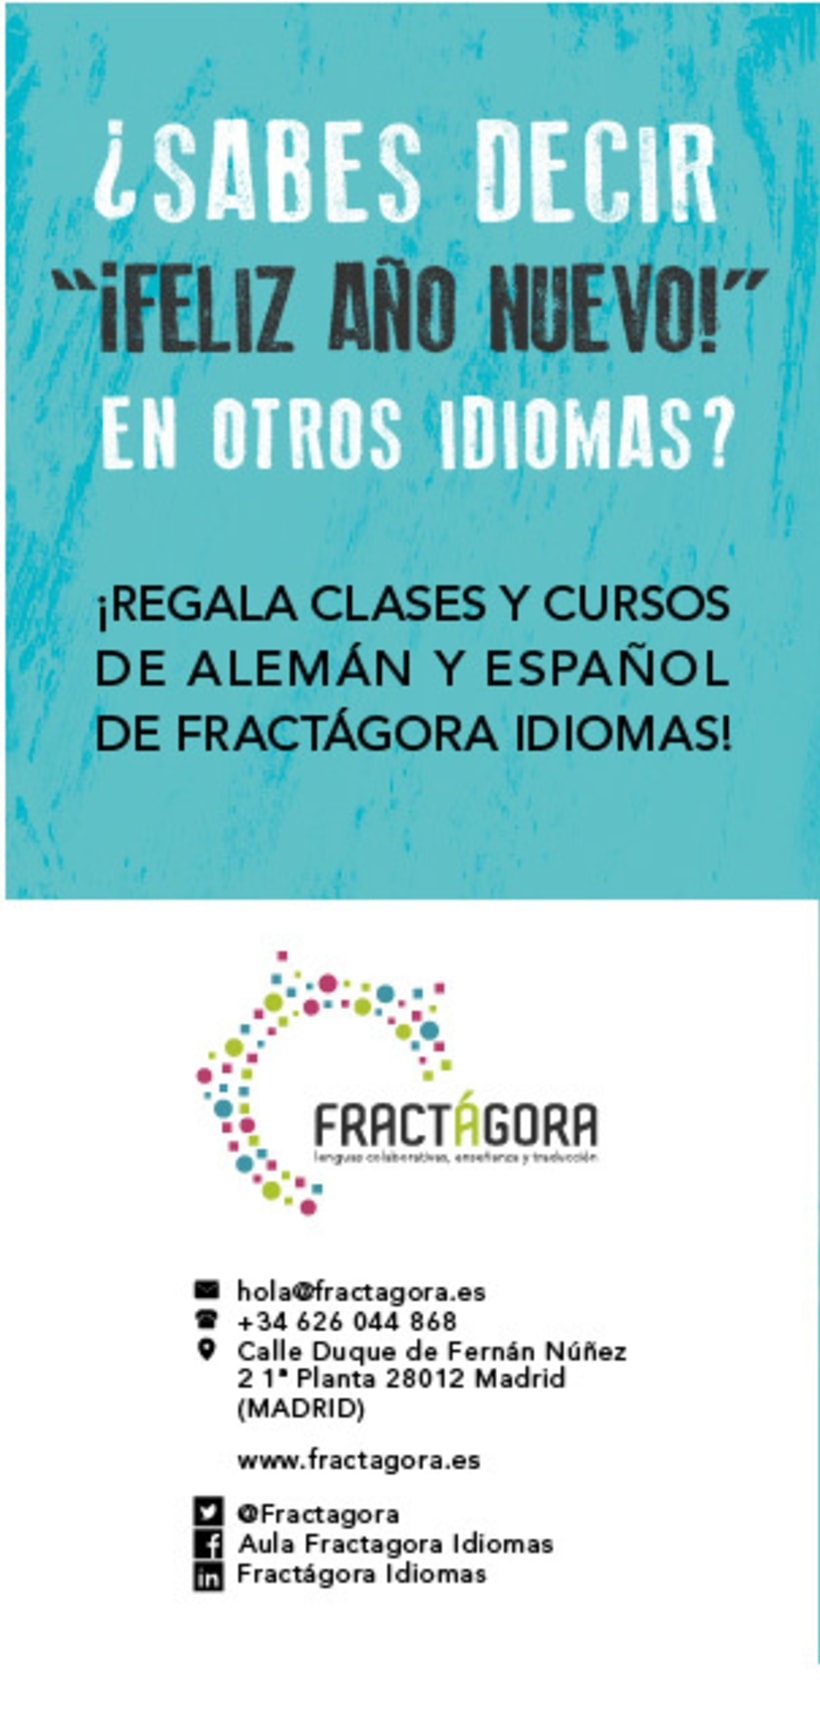 Cortinilla and flyers for Fractágora Idiomas 3